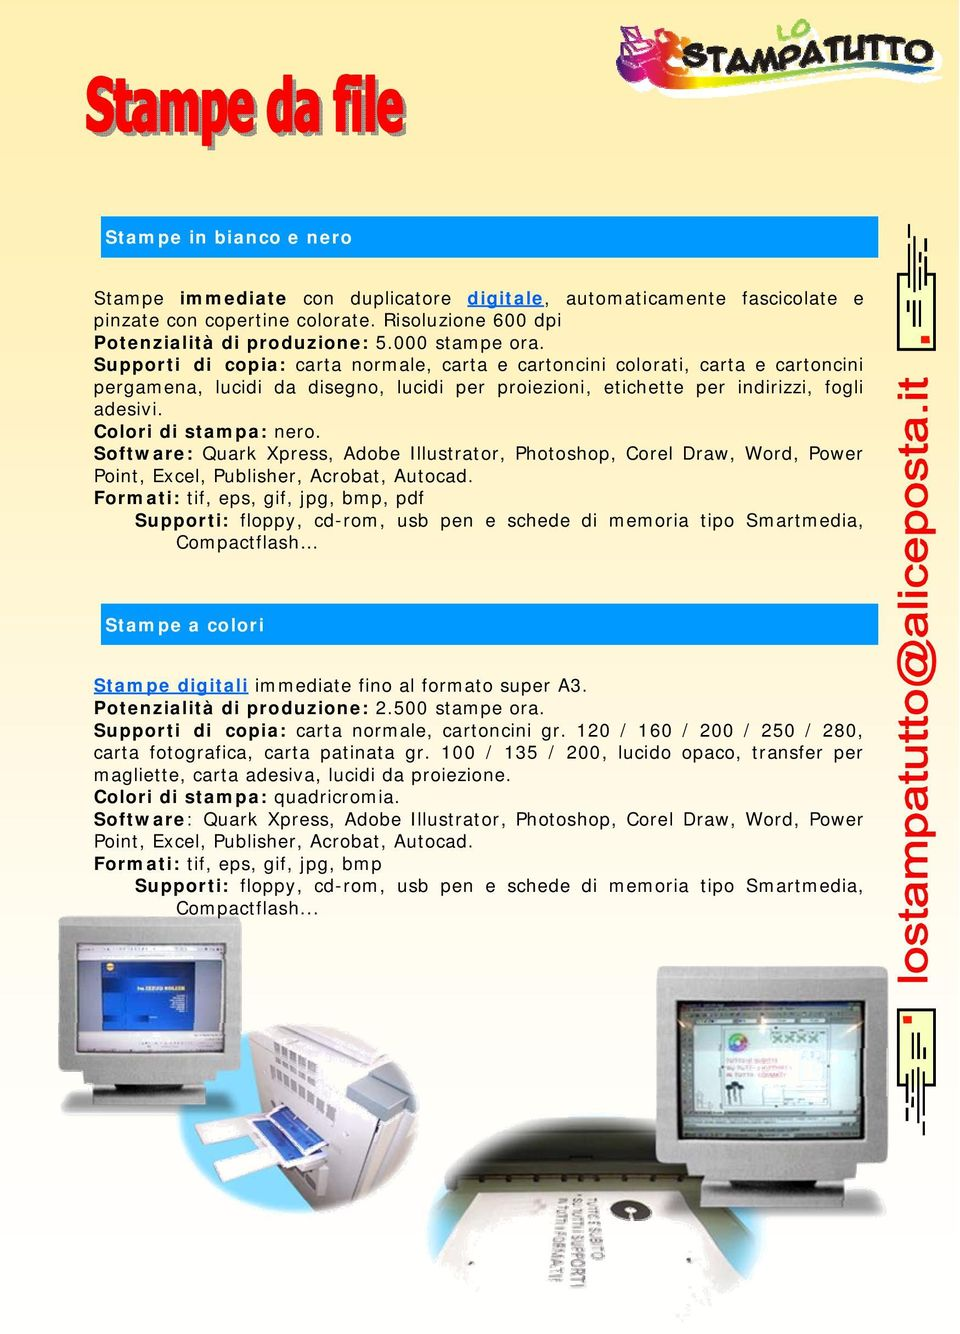 Software: Quark Xpress, Adobe Illustrator, Photoshop, Corel Draw, Word, Power Point, Excel, Publisher, Acrobat, Autocad.